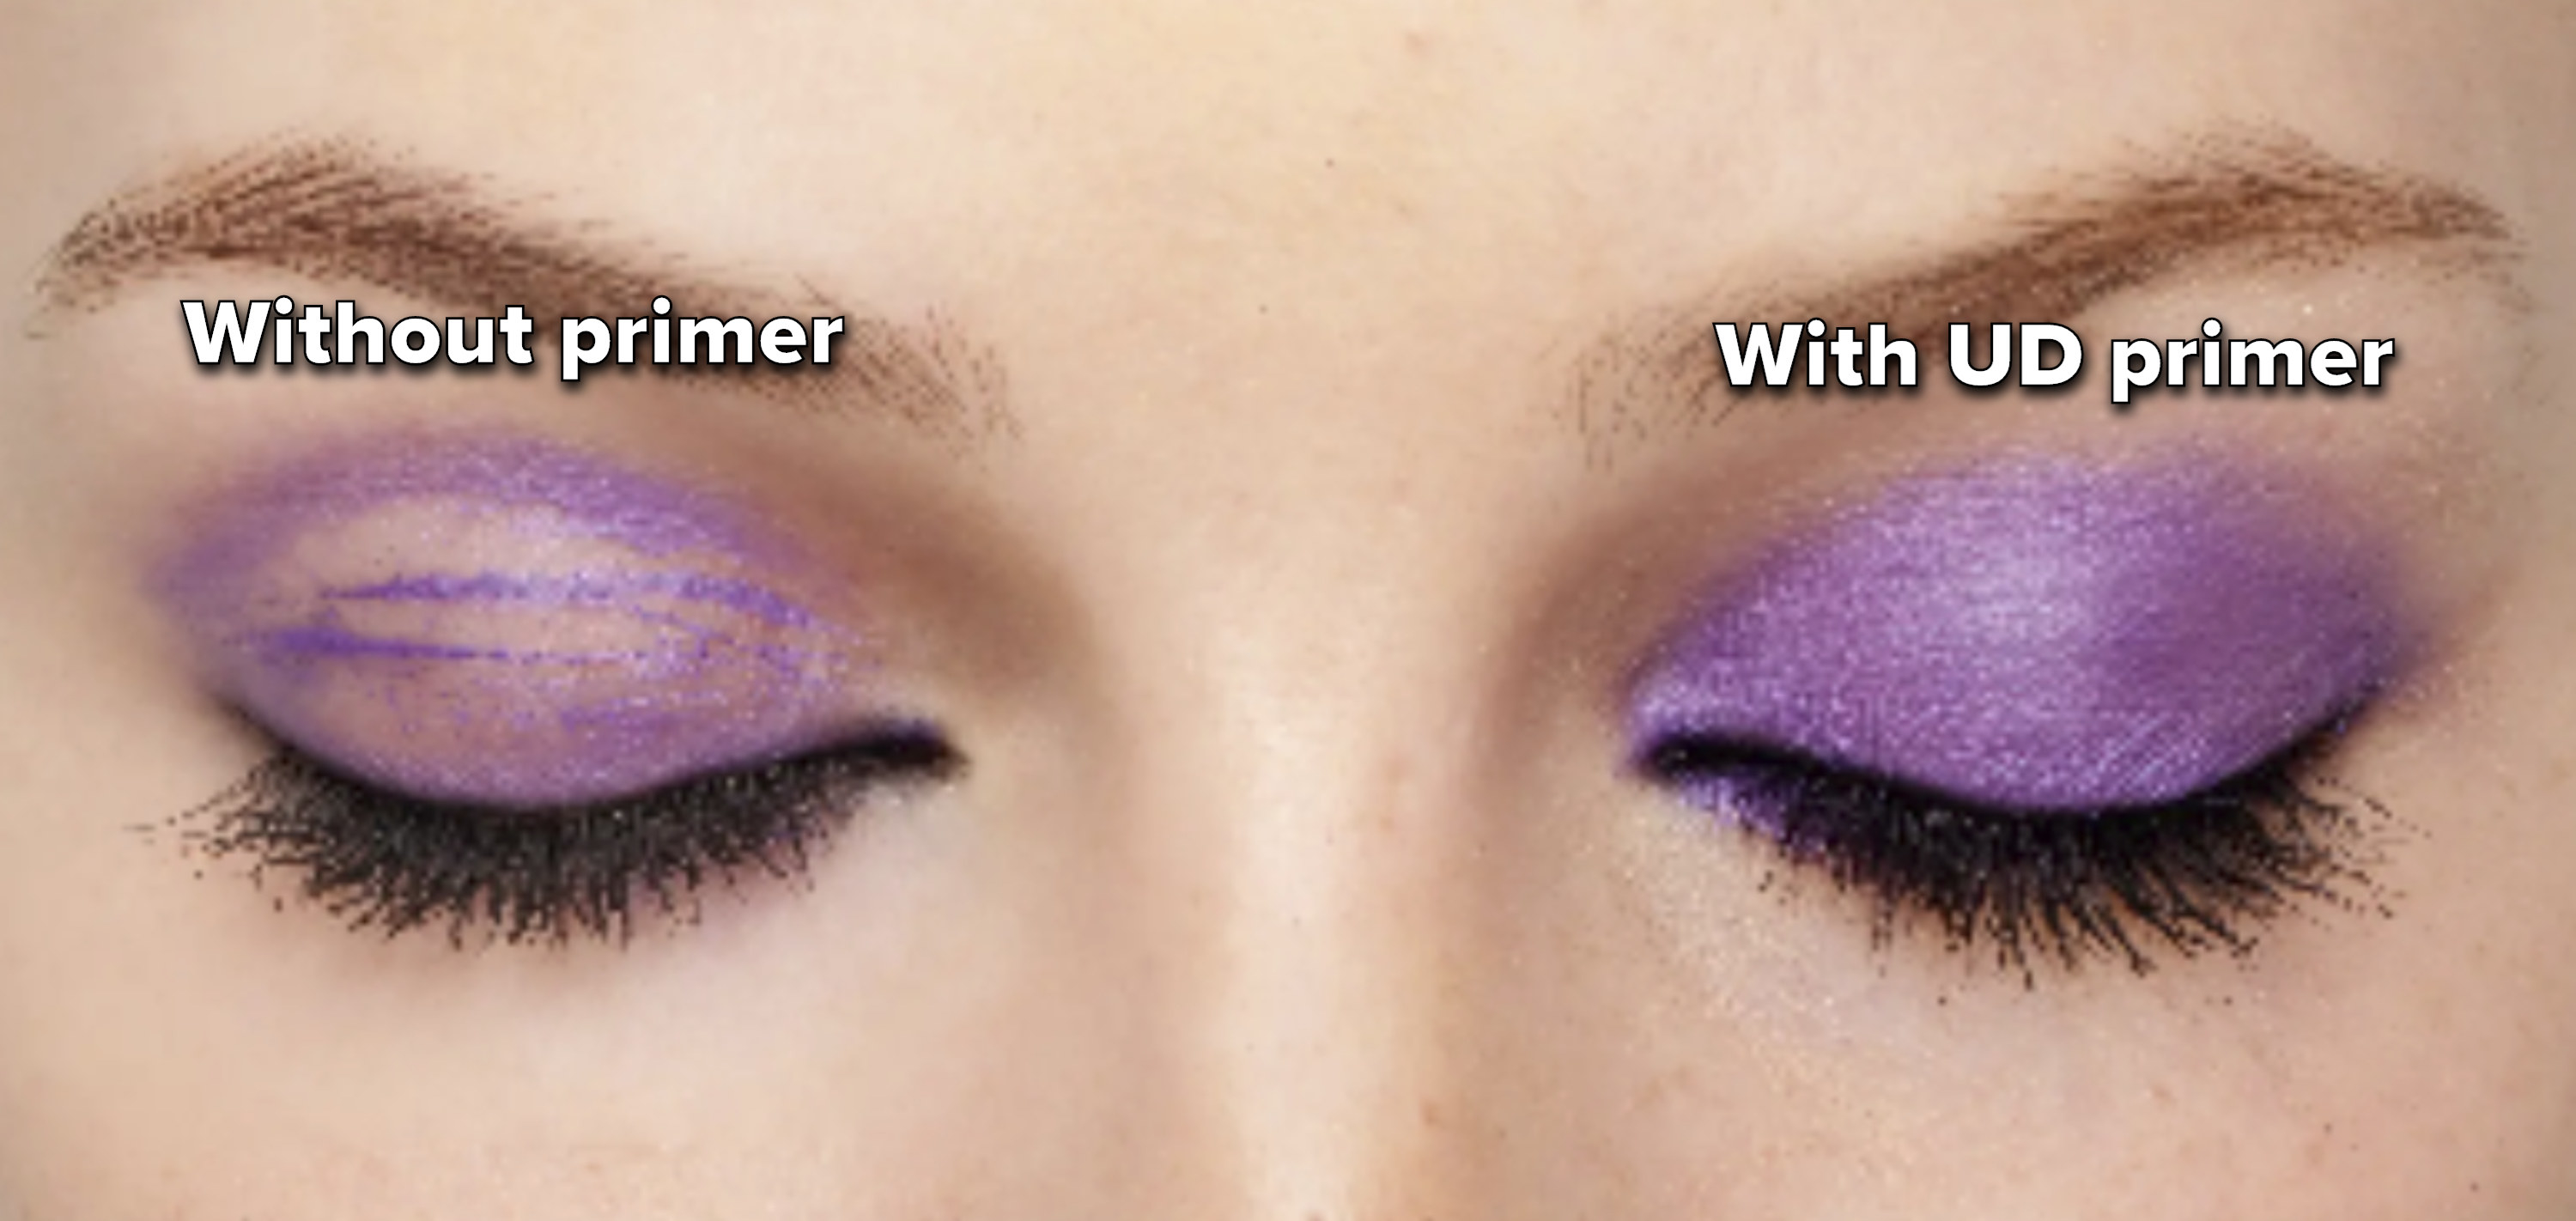 left side shows a model's eyelids with faded shimmery purple eyeshadow and the right eyelid shows the eyeshadow with primer which is fully intact